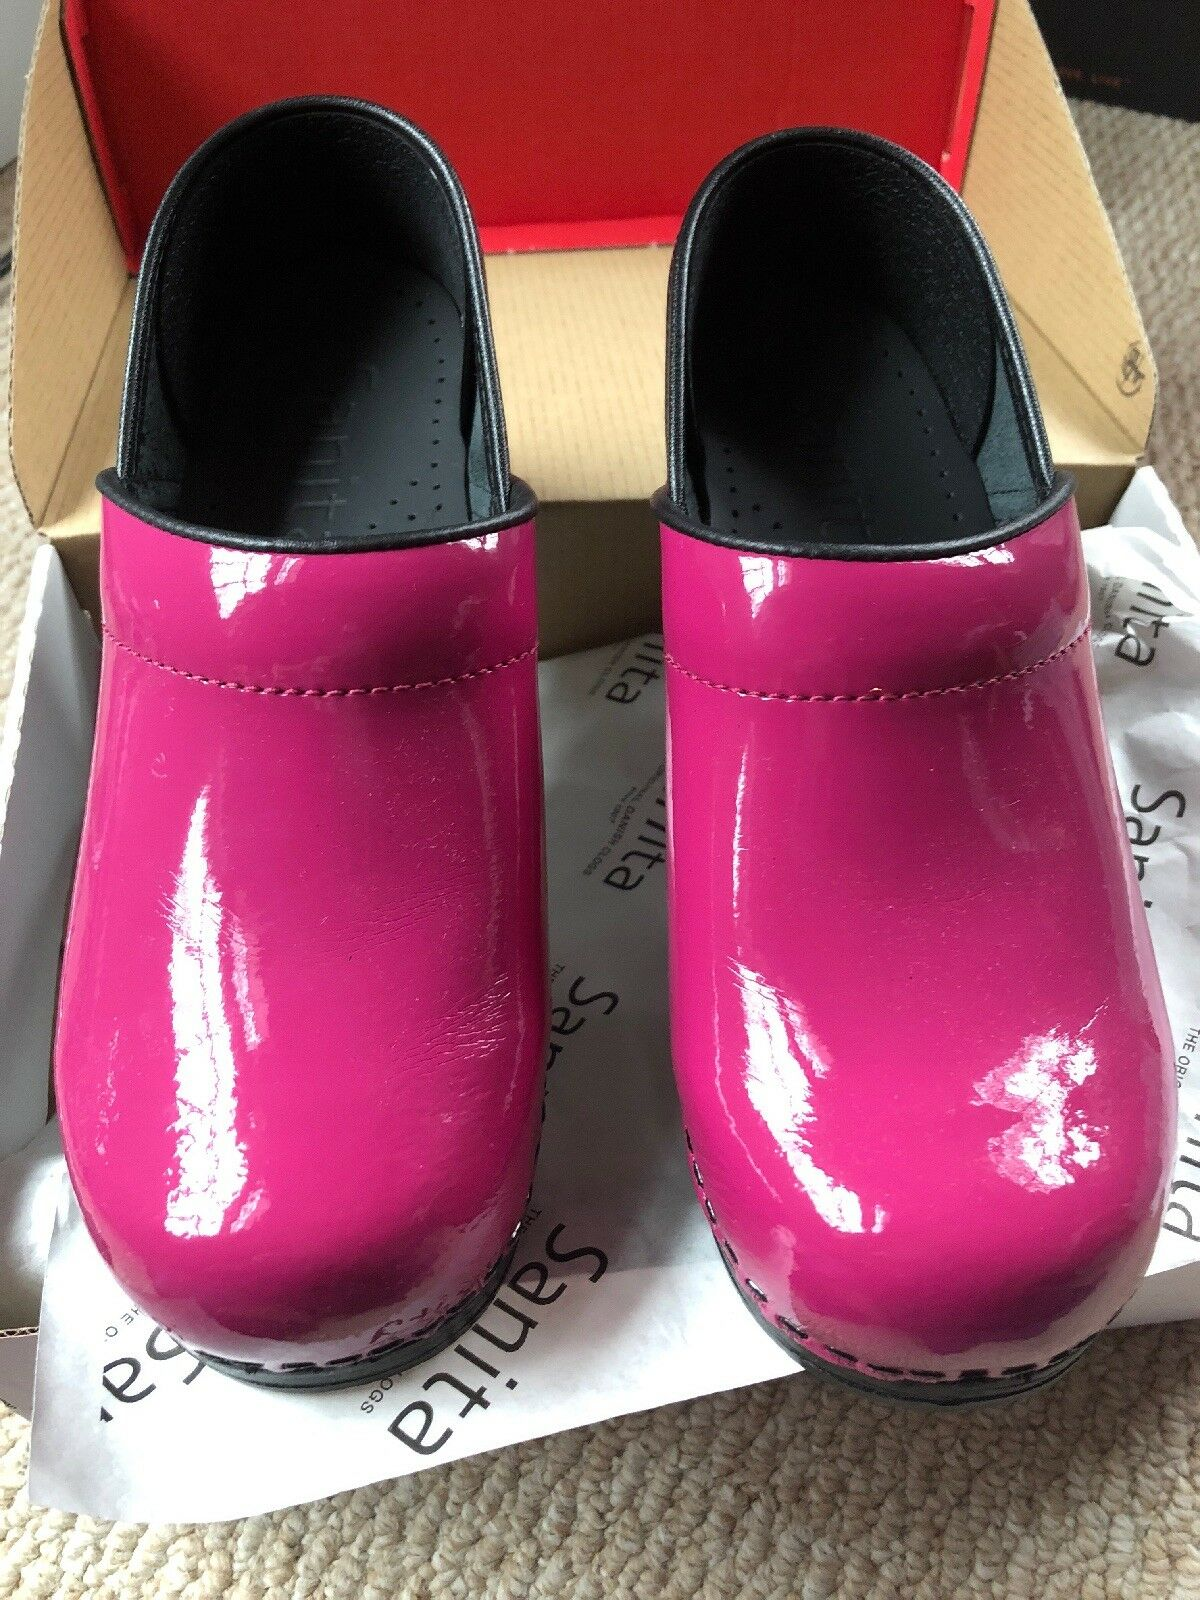 NEW Sanita Professional Patent Leather Clogs Fuchsia Eur 36   US 5.5-6